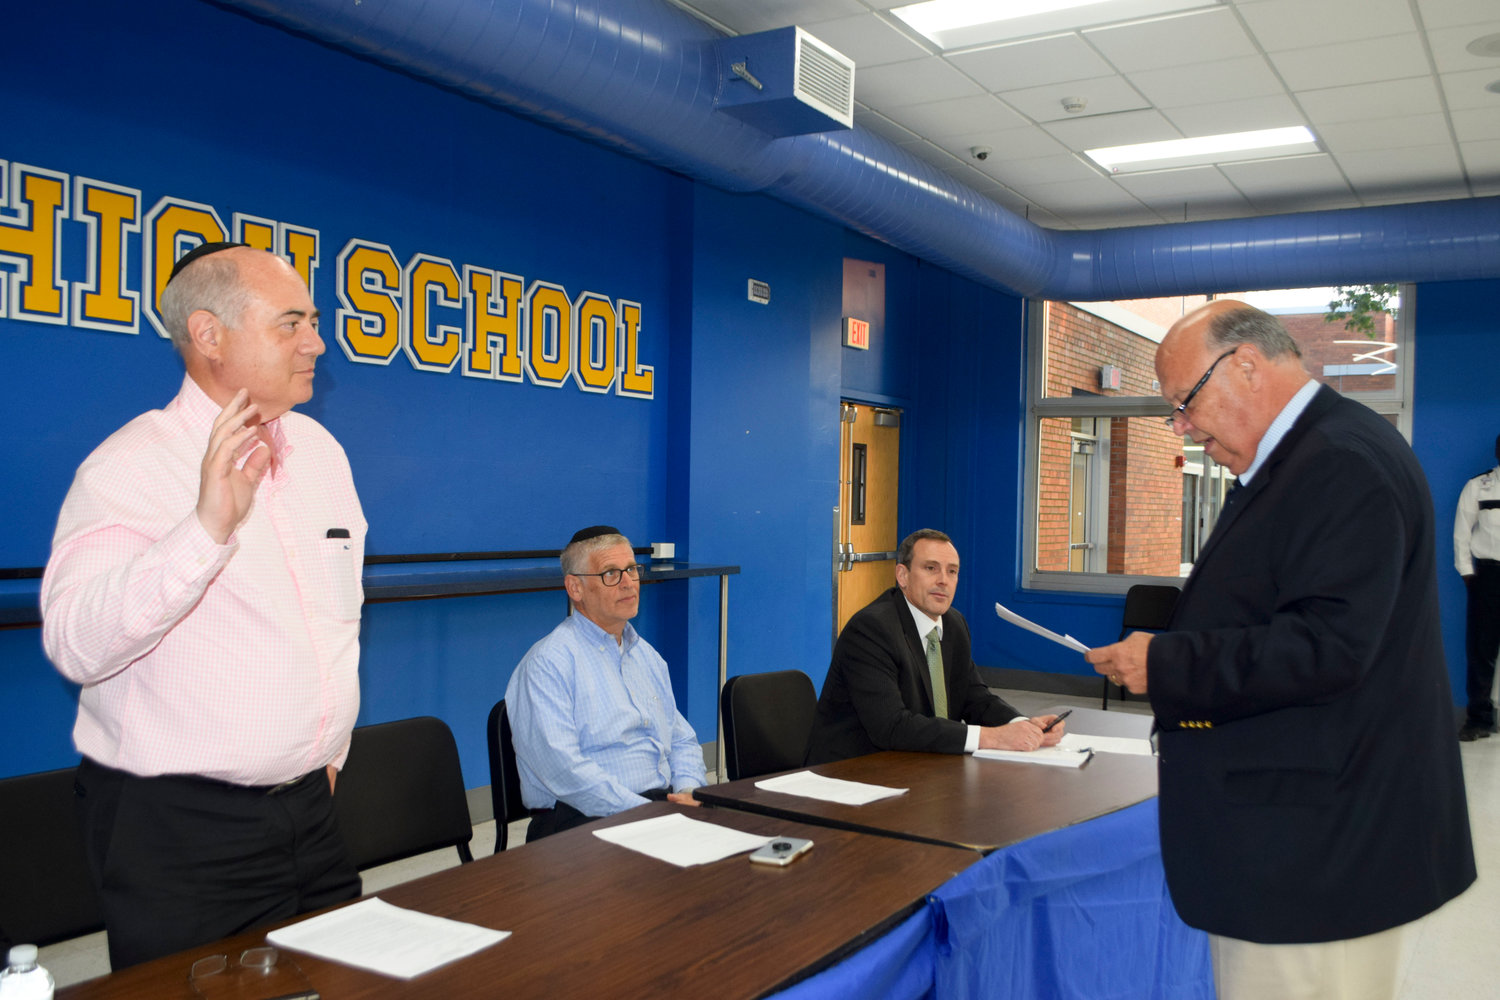 Lawrence Board of Education Murray Forman repeated the oath of office as administered by lawyer Al D'Agostino, who represents the school district.